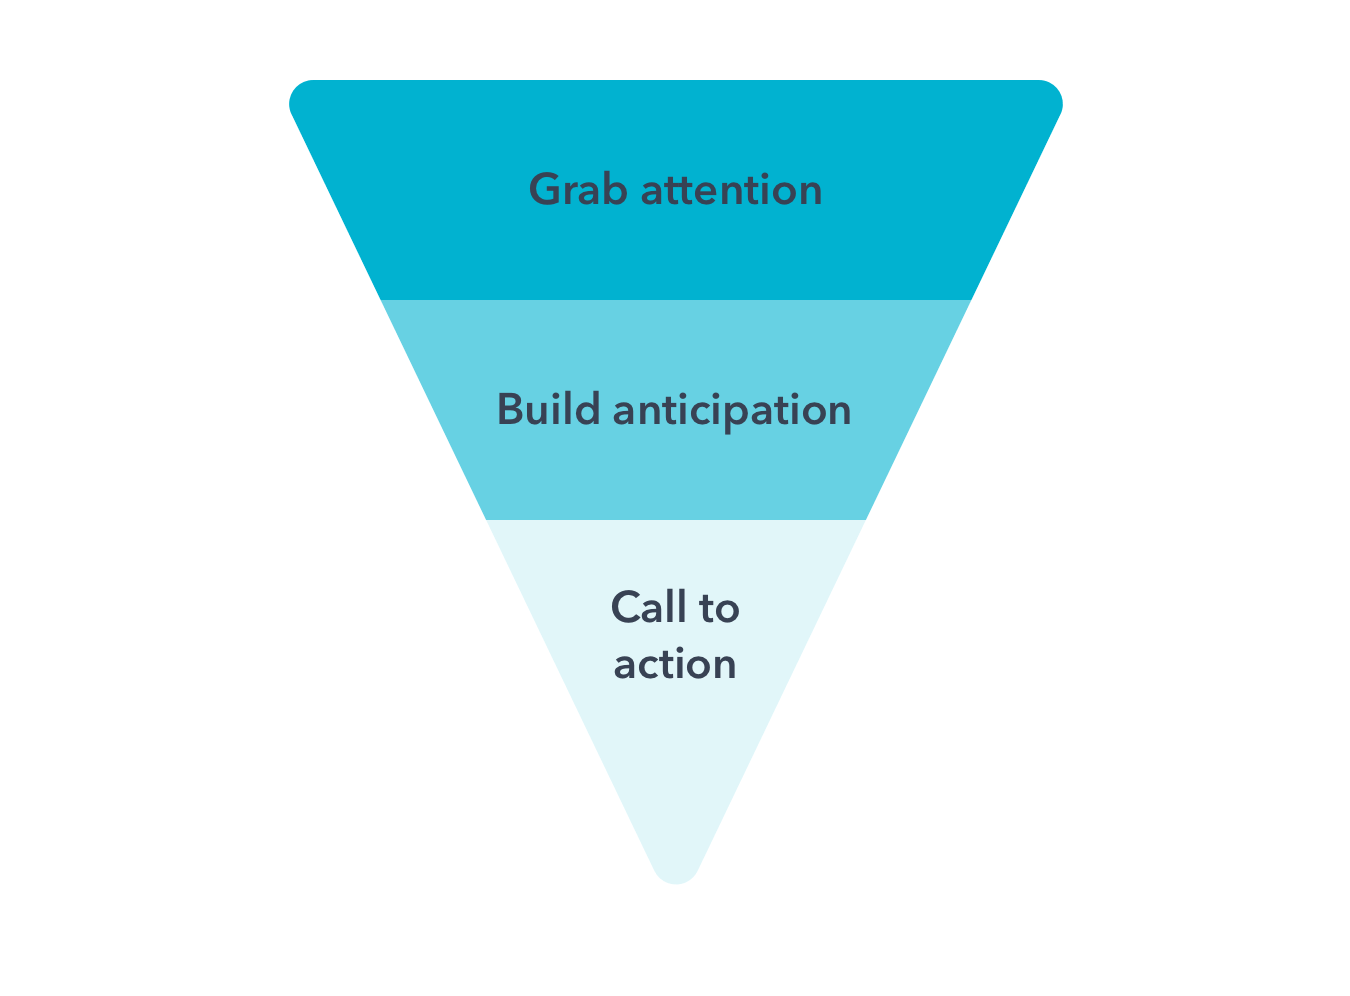 email-marketing-best-practices-inverted-pyramid@2x